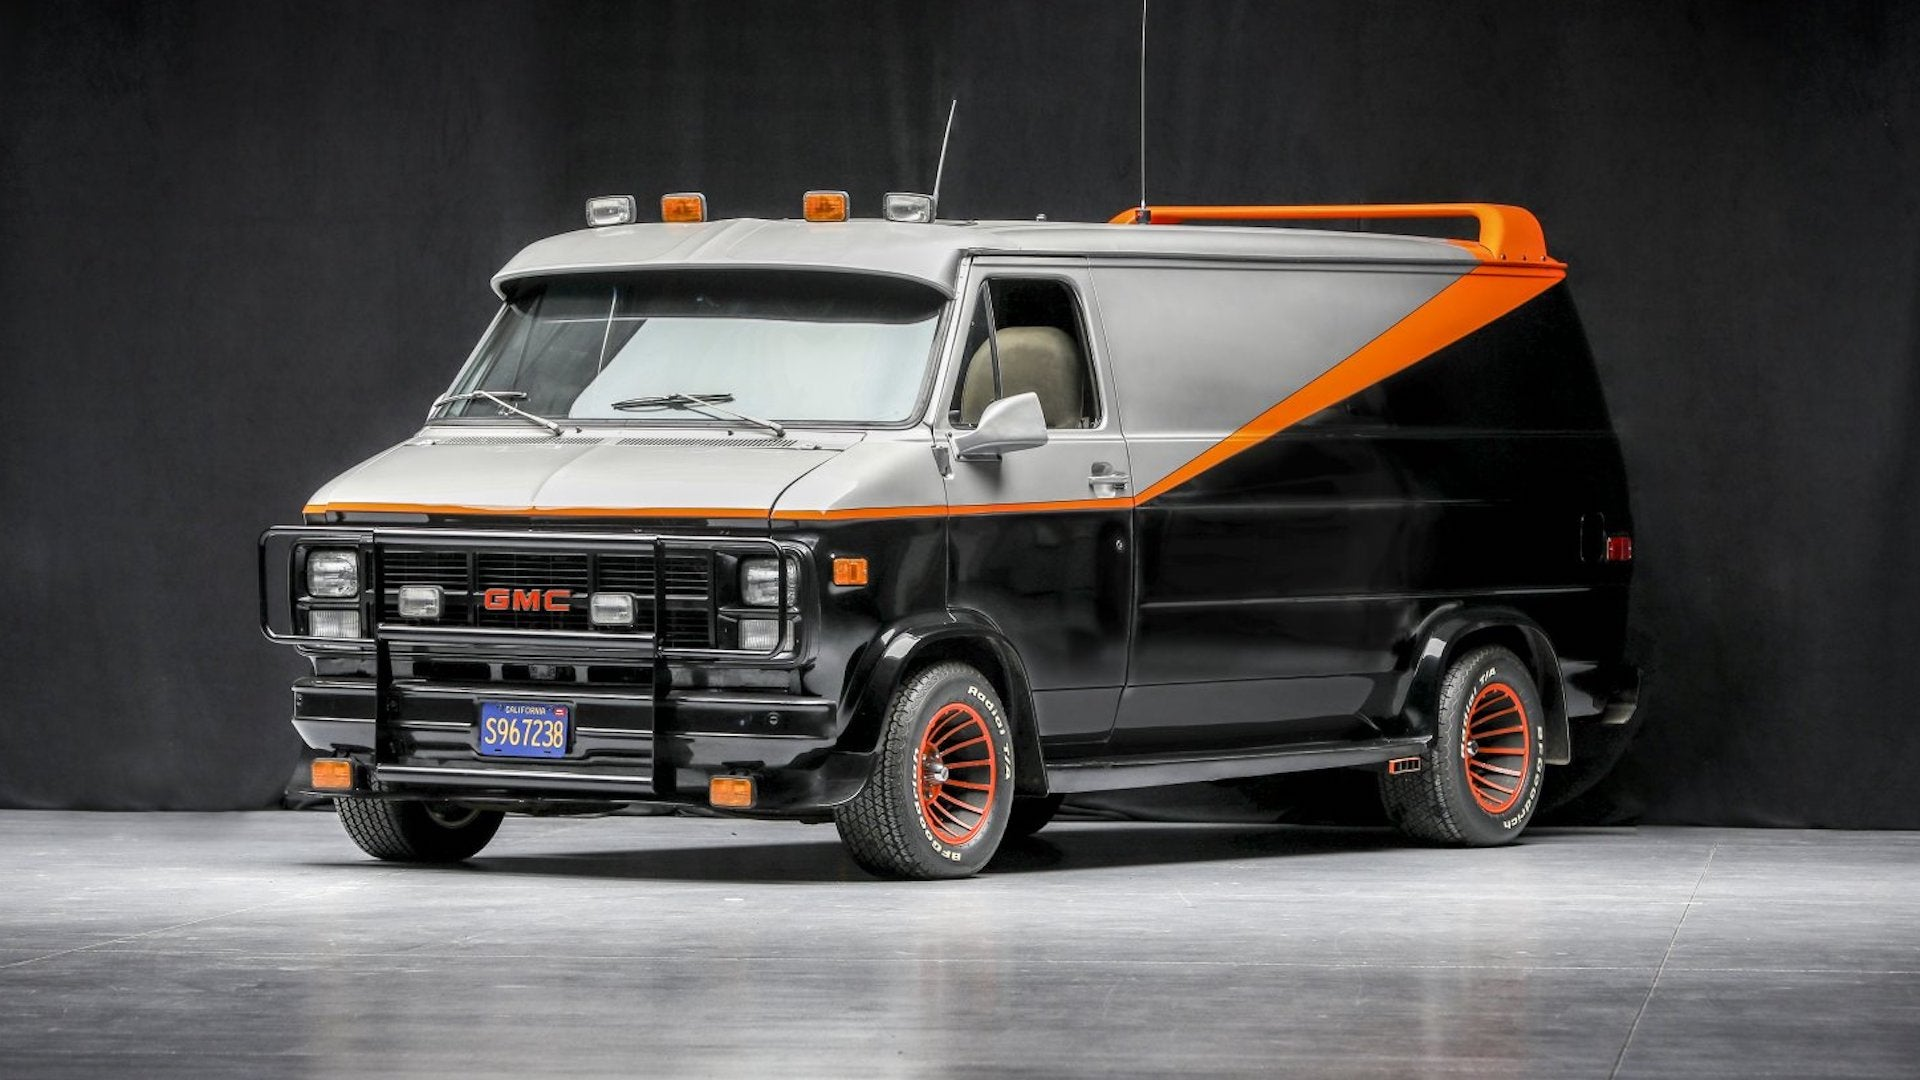 You can now score your very own 'The A-Team' van